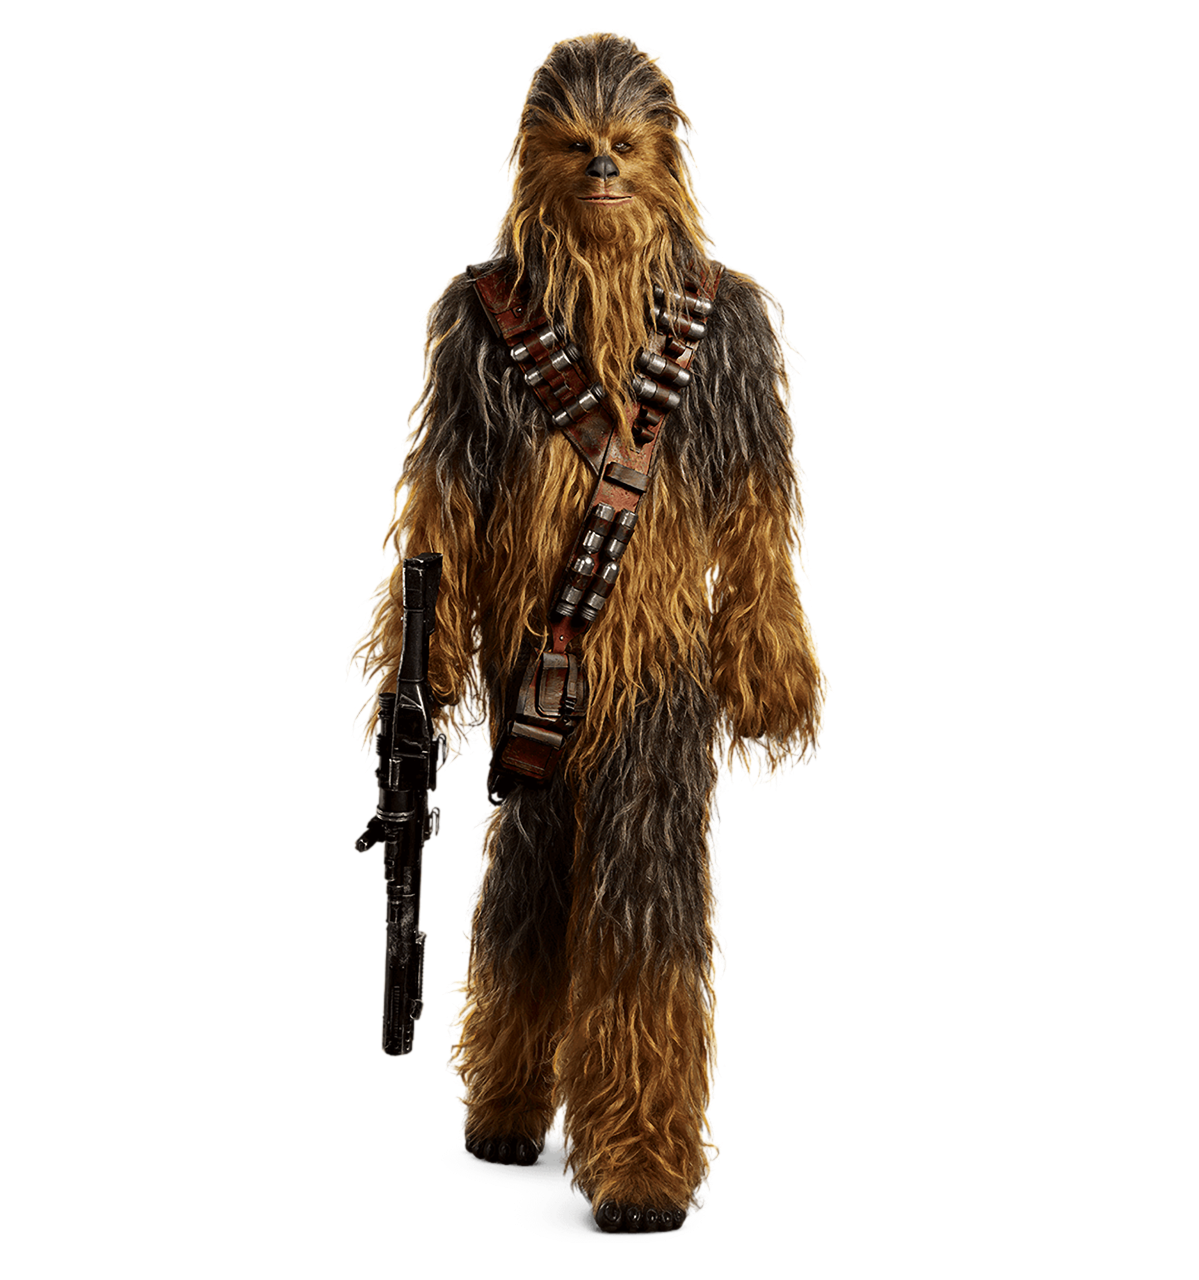 Star wars chewbacca png. Chewie solo a story